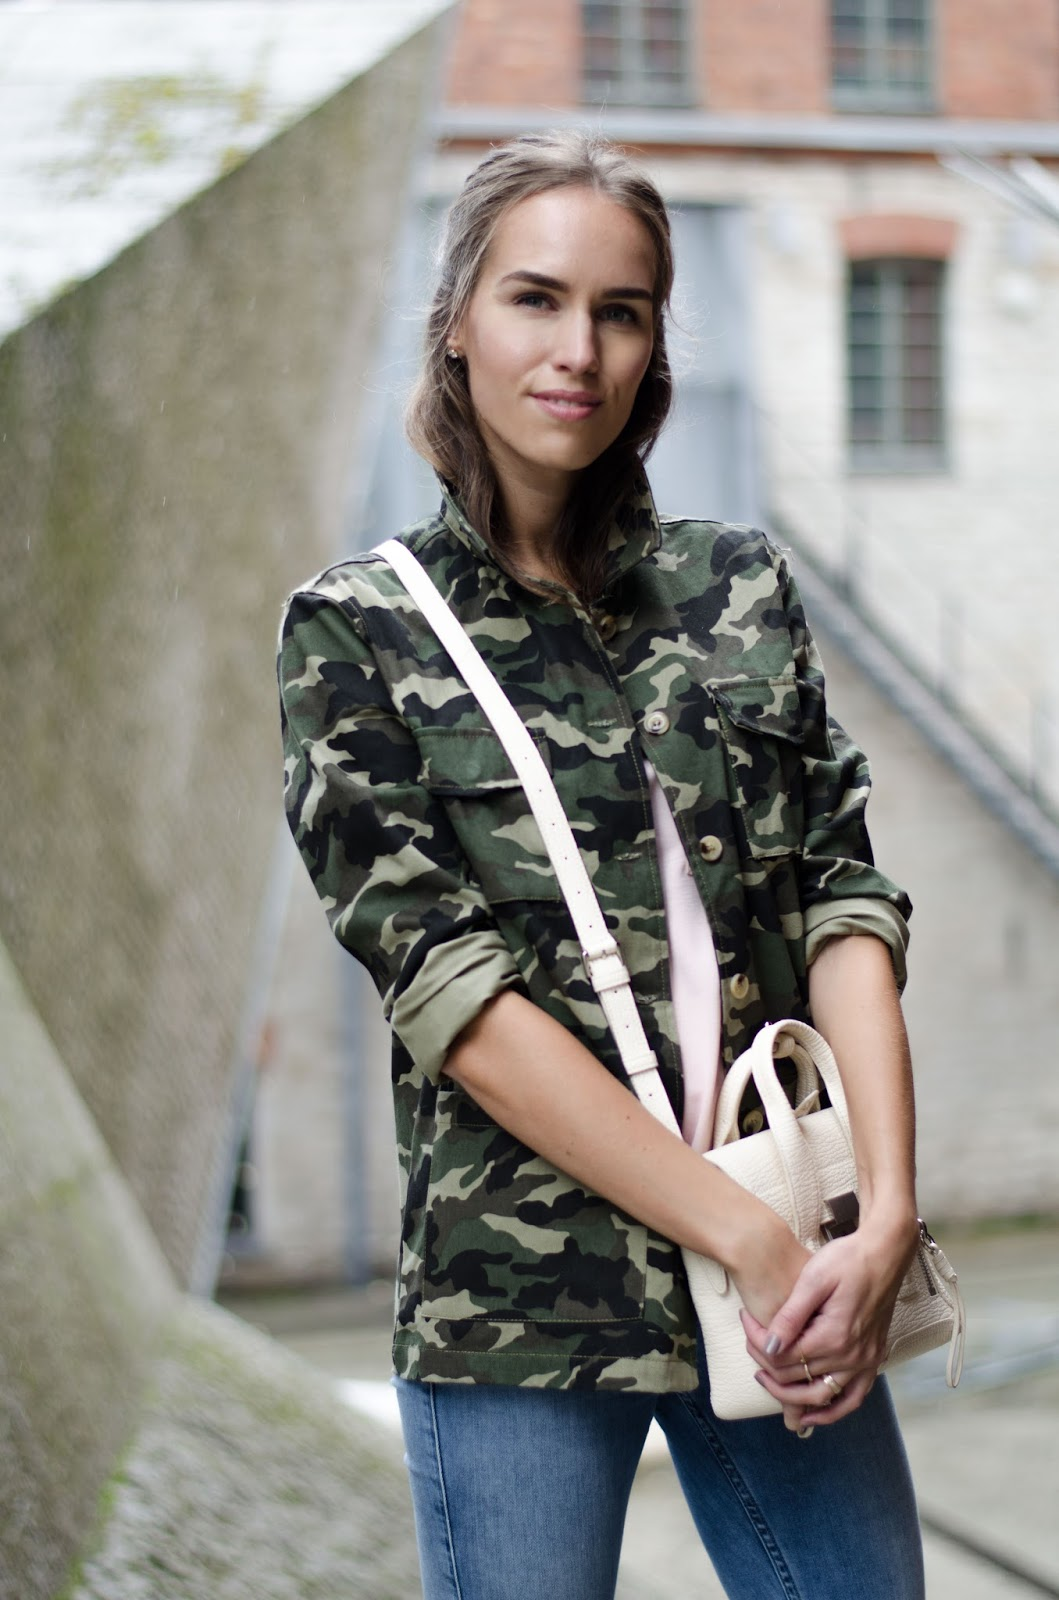 military camo jacket outfit